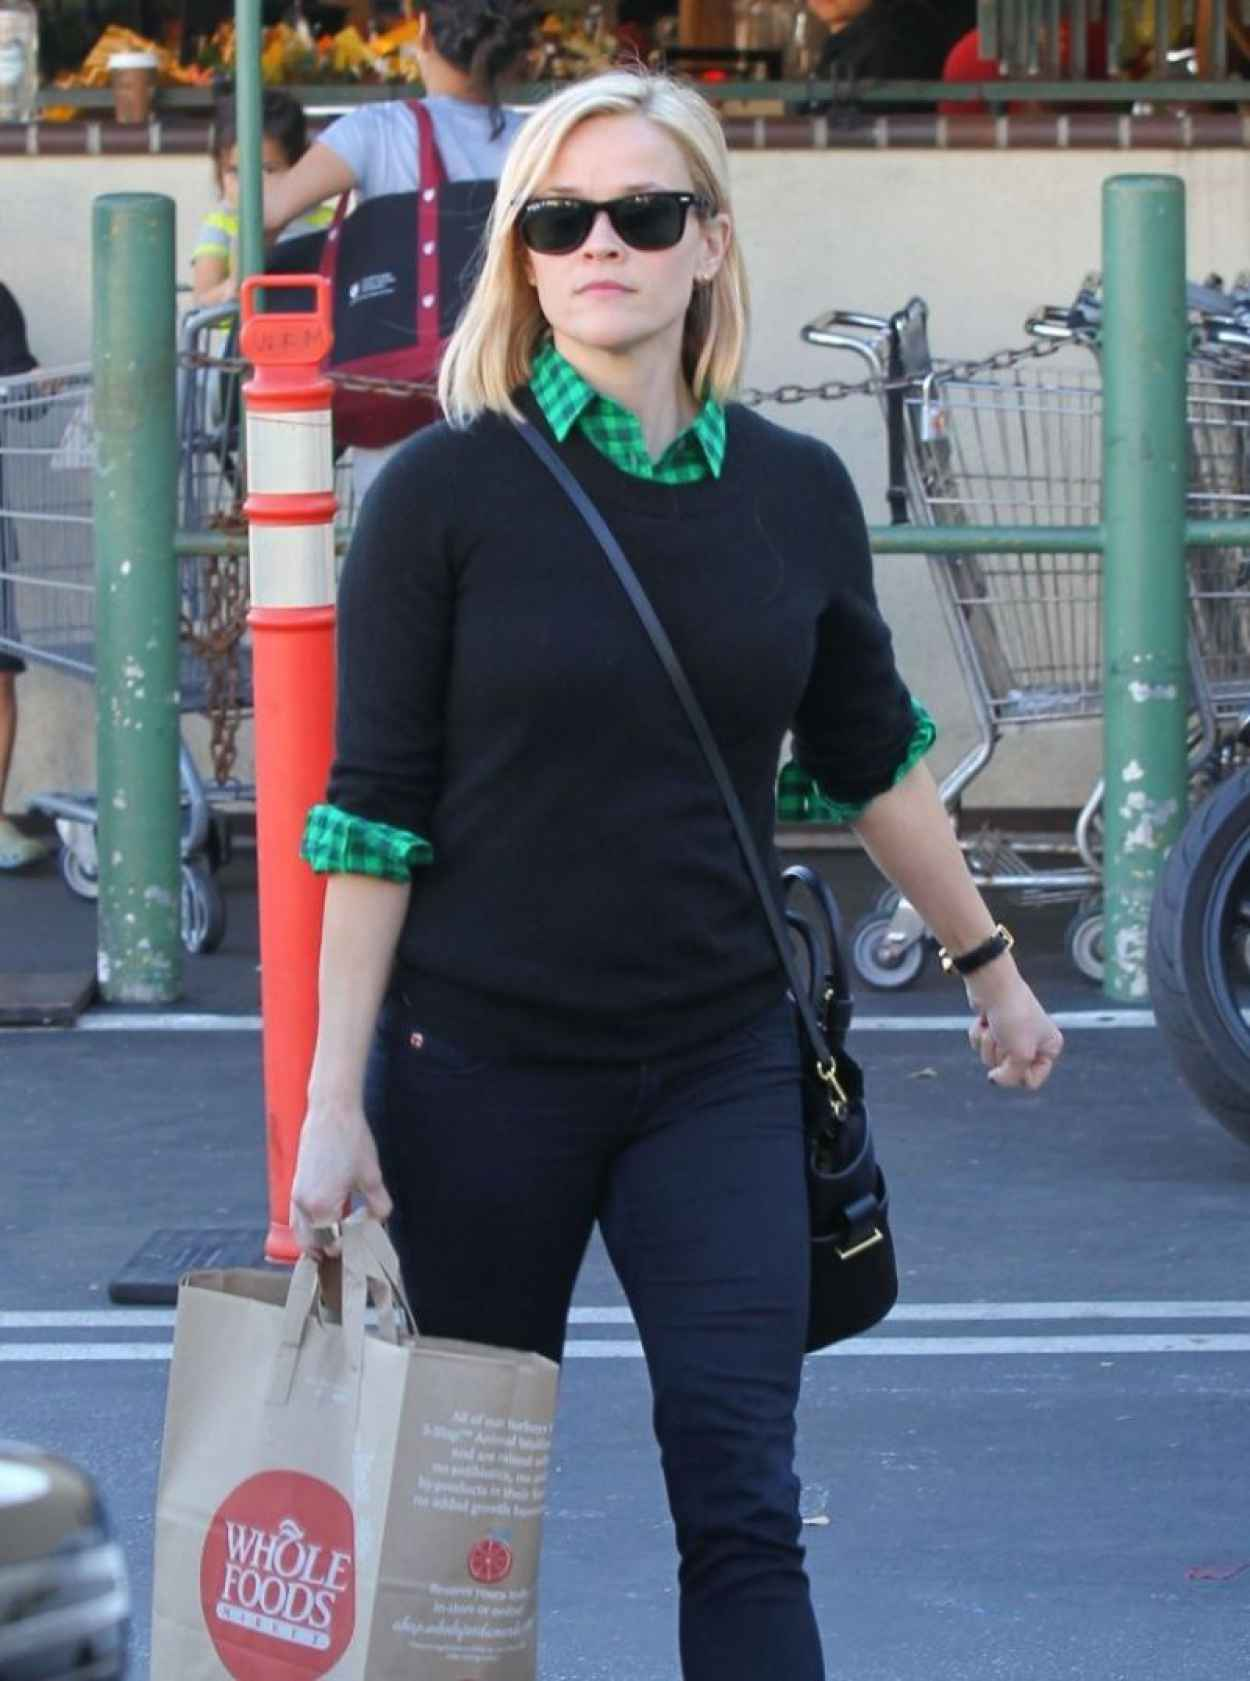 Reese Witherspoon Street Style - Whole Foods in Santa Monica-1